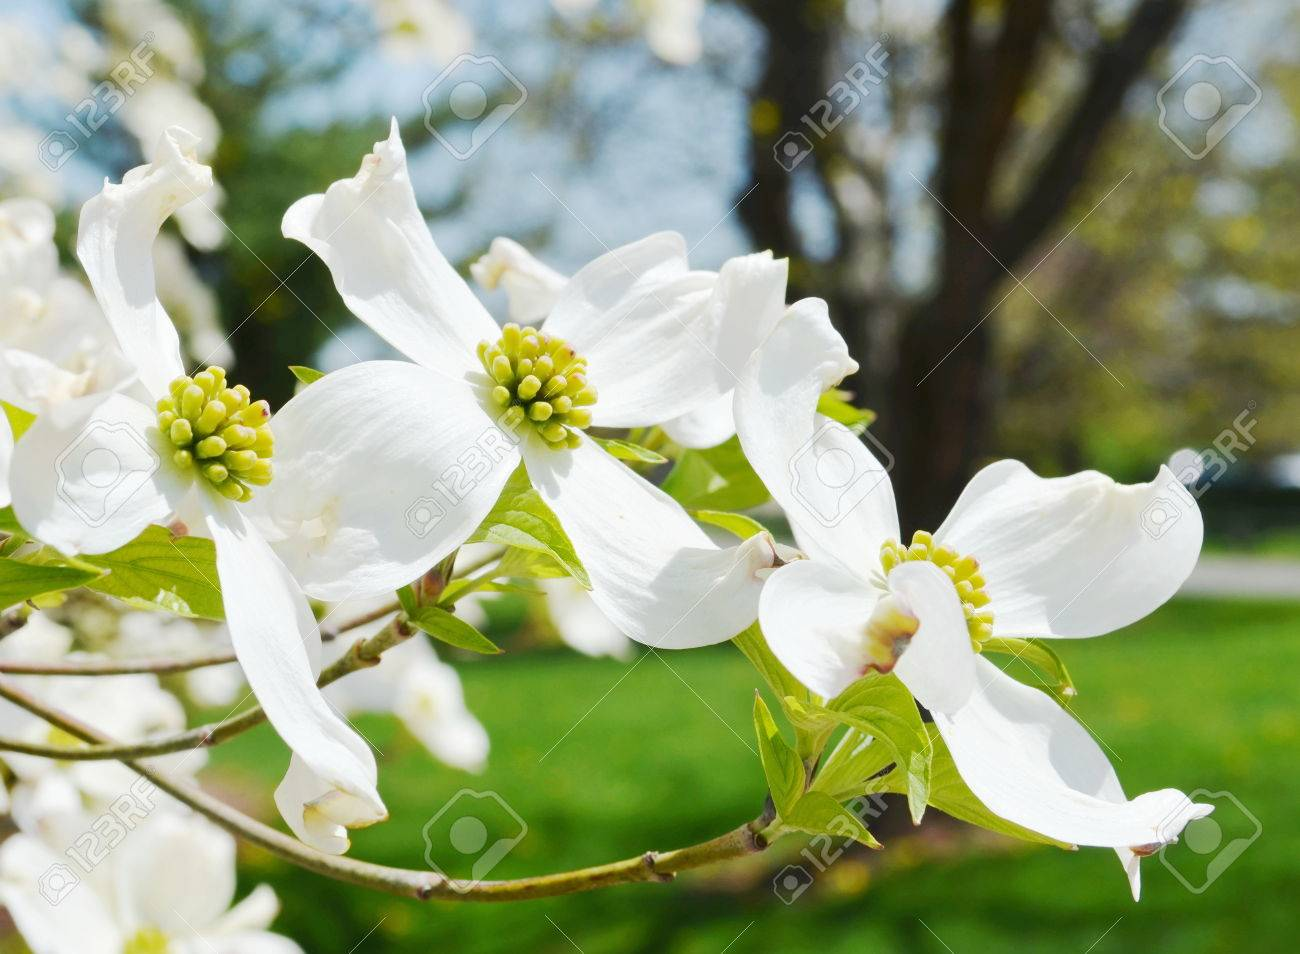 White dogwood tree flowers blooming stock photo picture and royalty stock photo white dogwood tree flowers blooming mightylinksfo